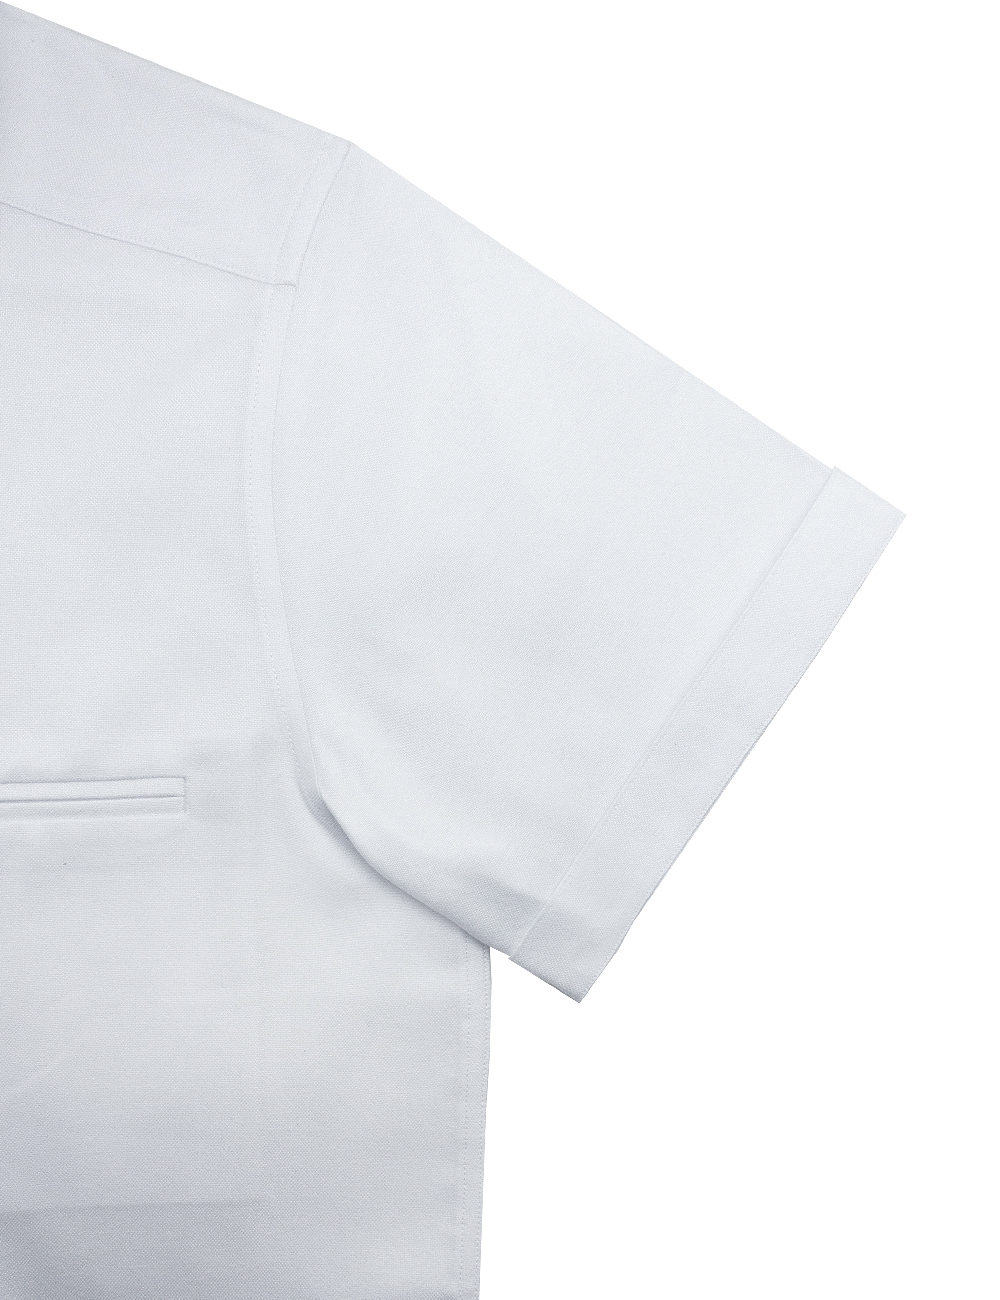 Relaxed Fit Cotton Blend Wrinkle Resistant Solid White Oxford Short Sleeve Easy Iron Shirt RF9SNB10.17